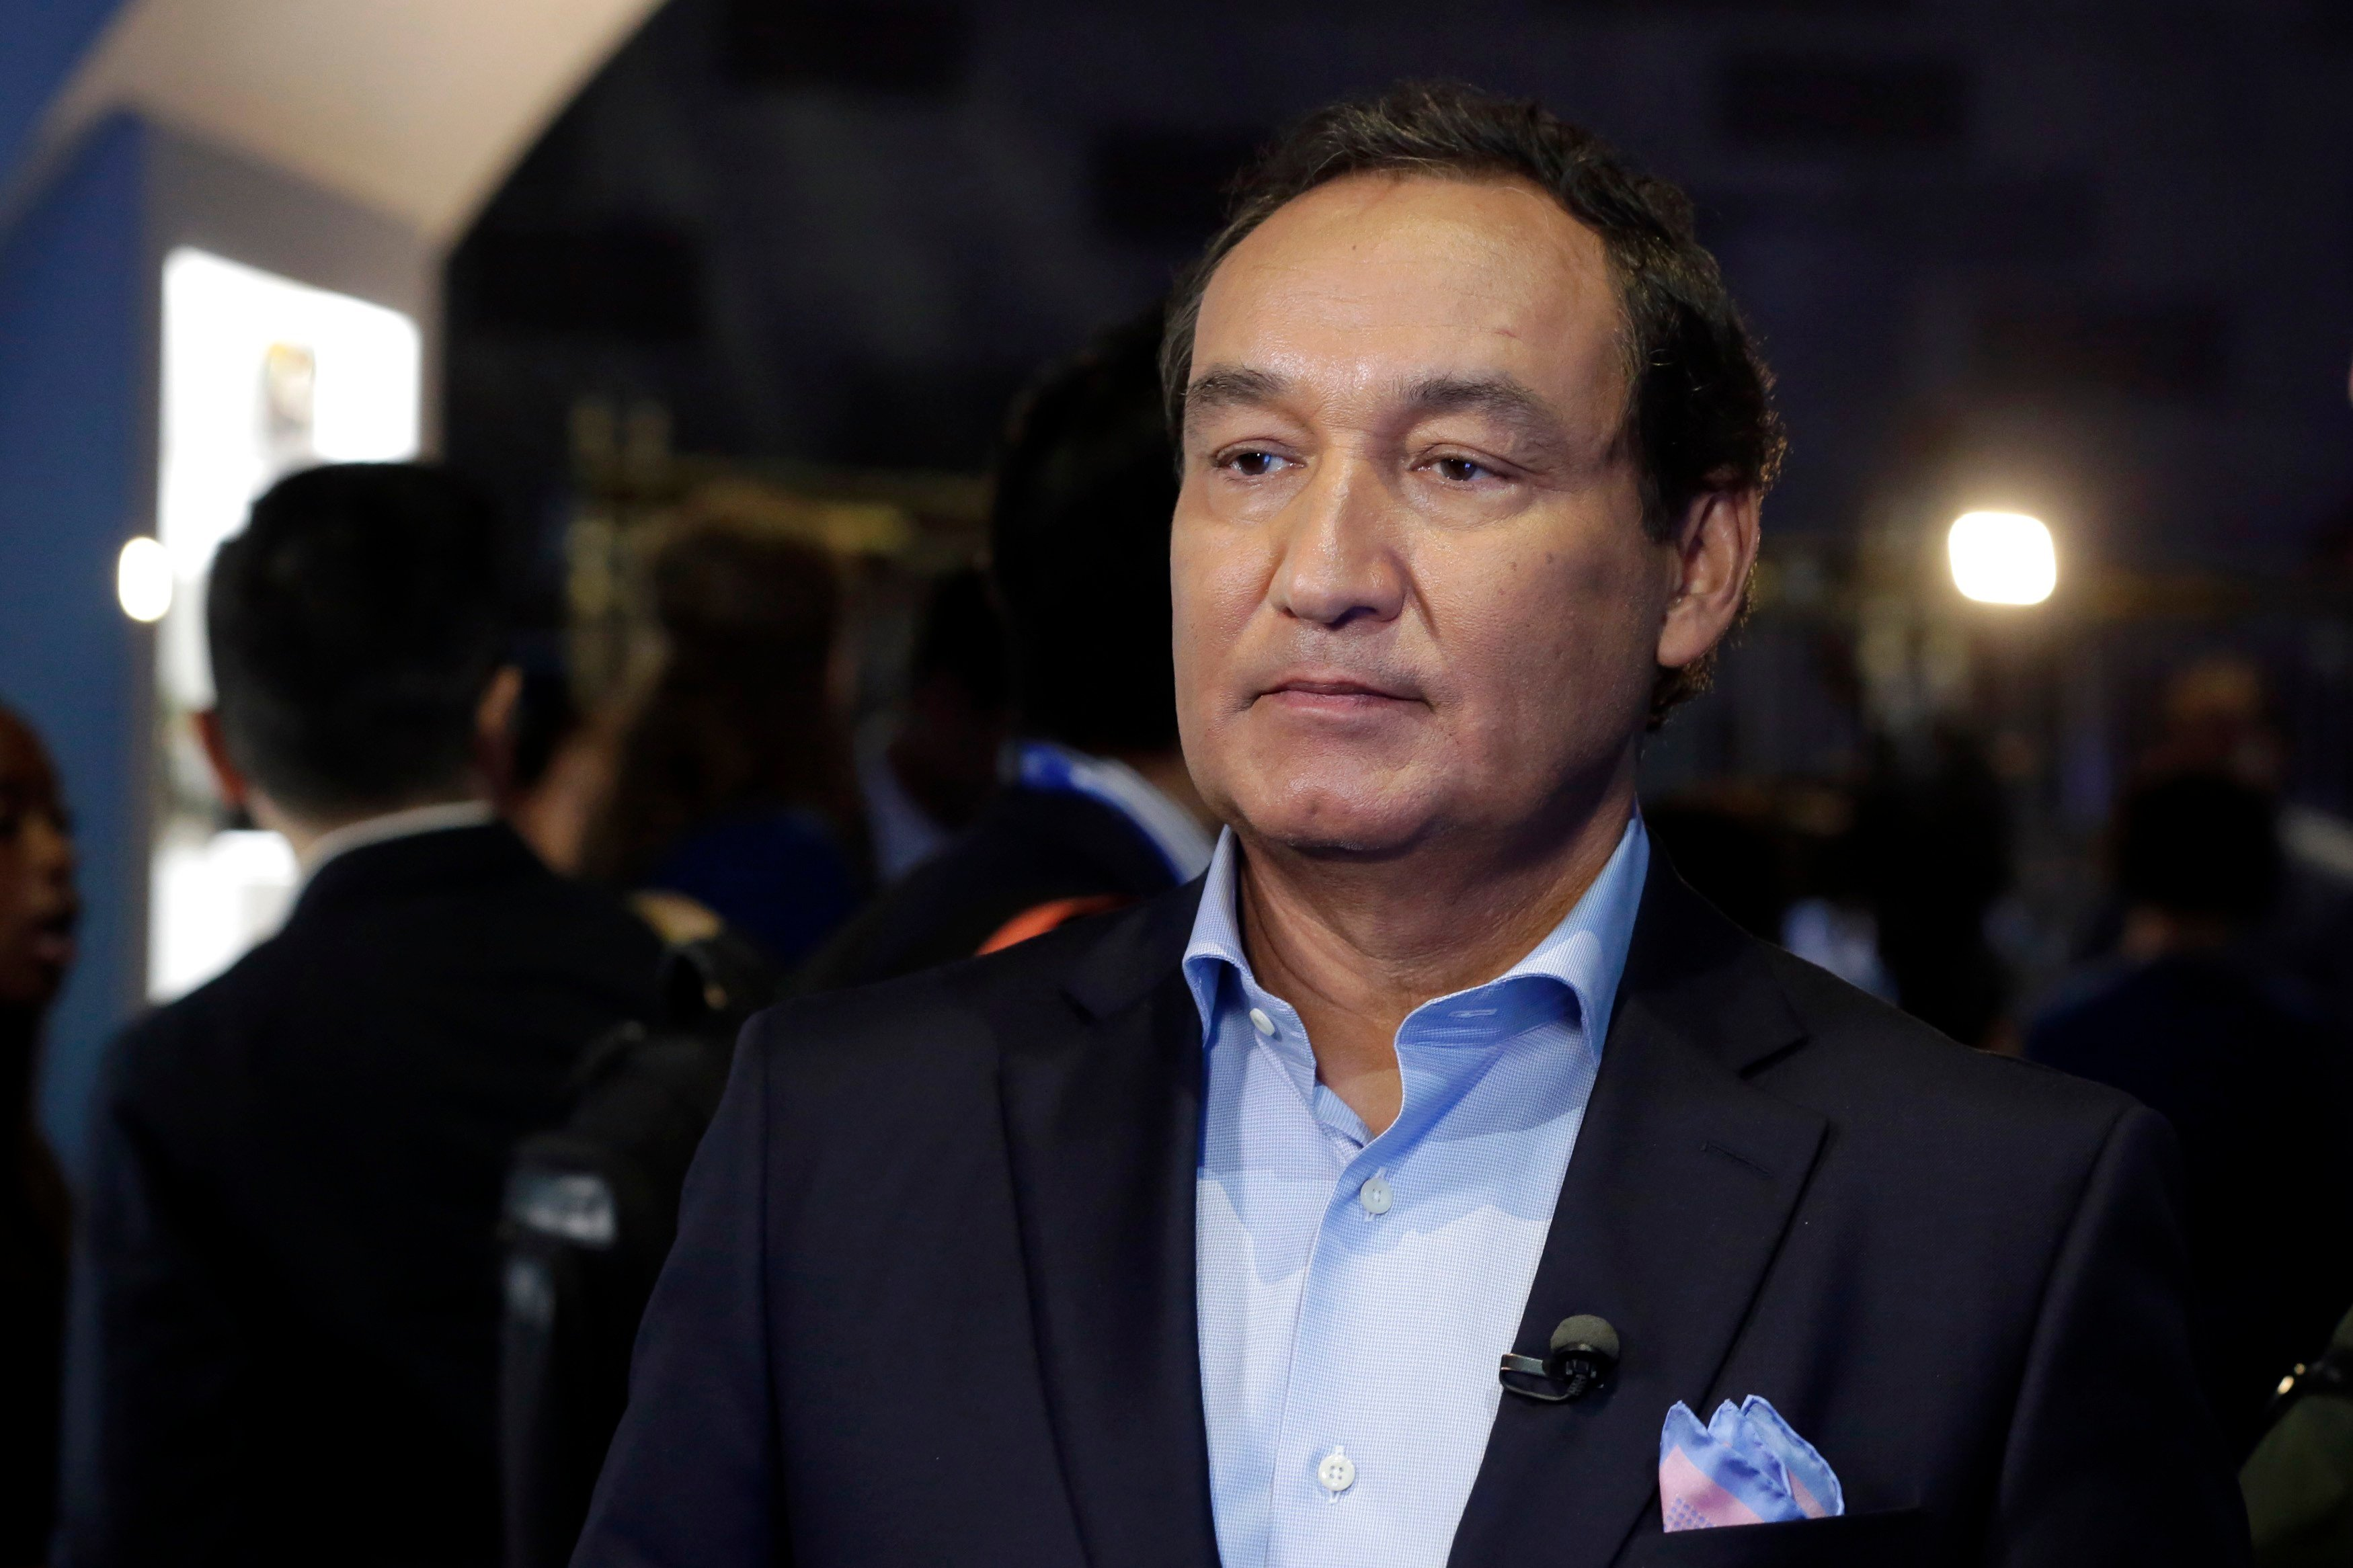 FILE - In this Thursday, June 2, 2016, file photo, United Airlines CEO Oscar Munoz waits to be interviewed, in New York, during a presentation of the carrier's new Polaris service, a new business class product that will become available on trans-Atlantic